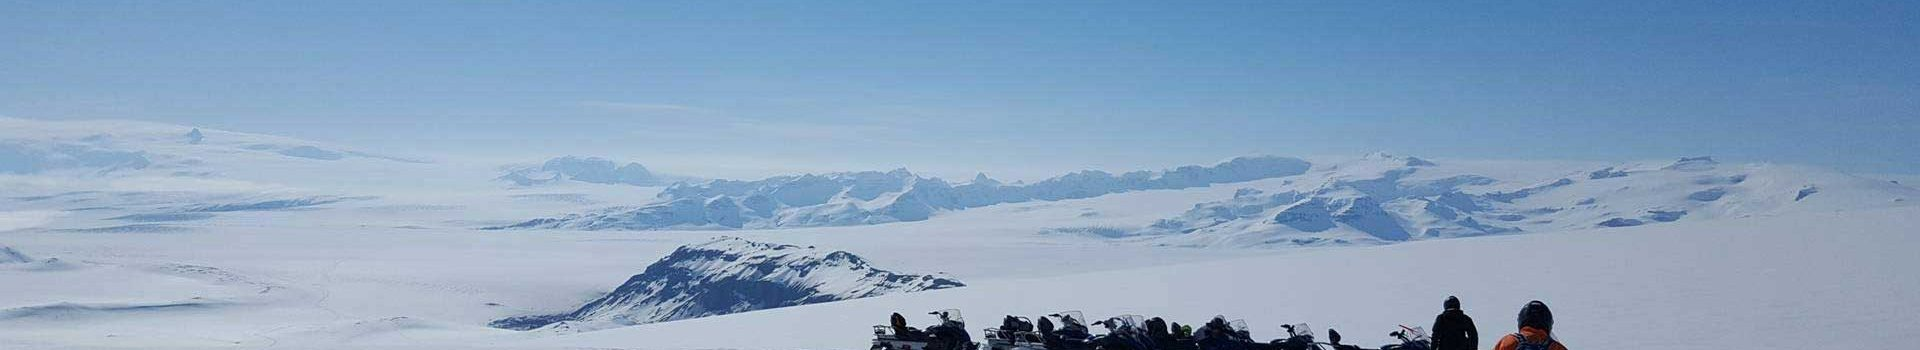 Snowmobiling tour on Vatnajokull glacier in Iceland